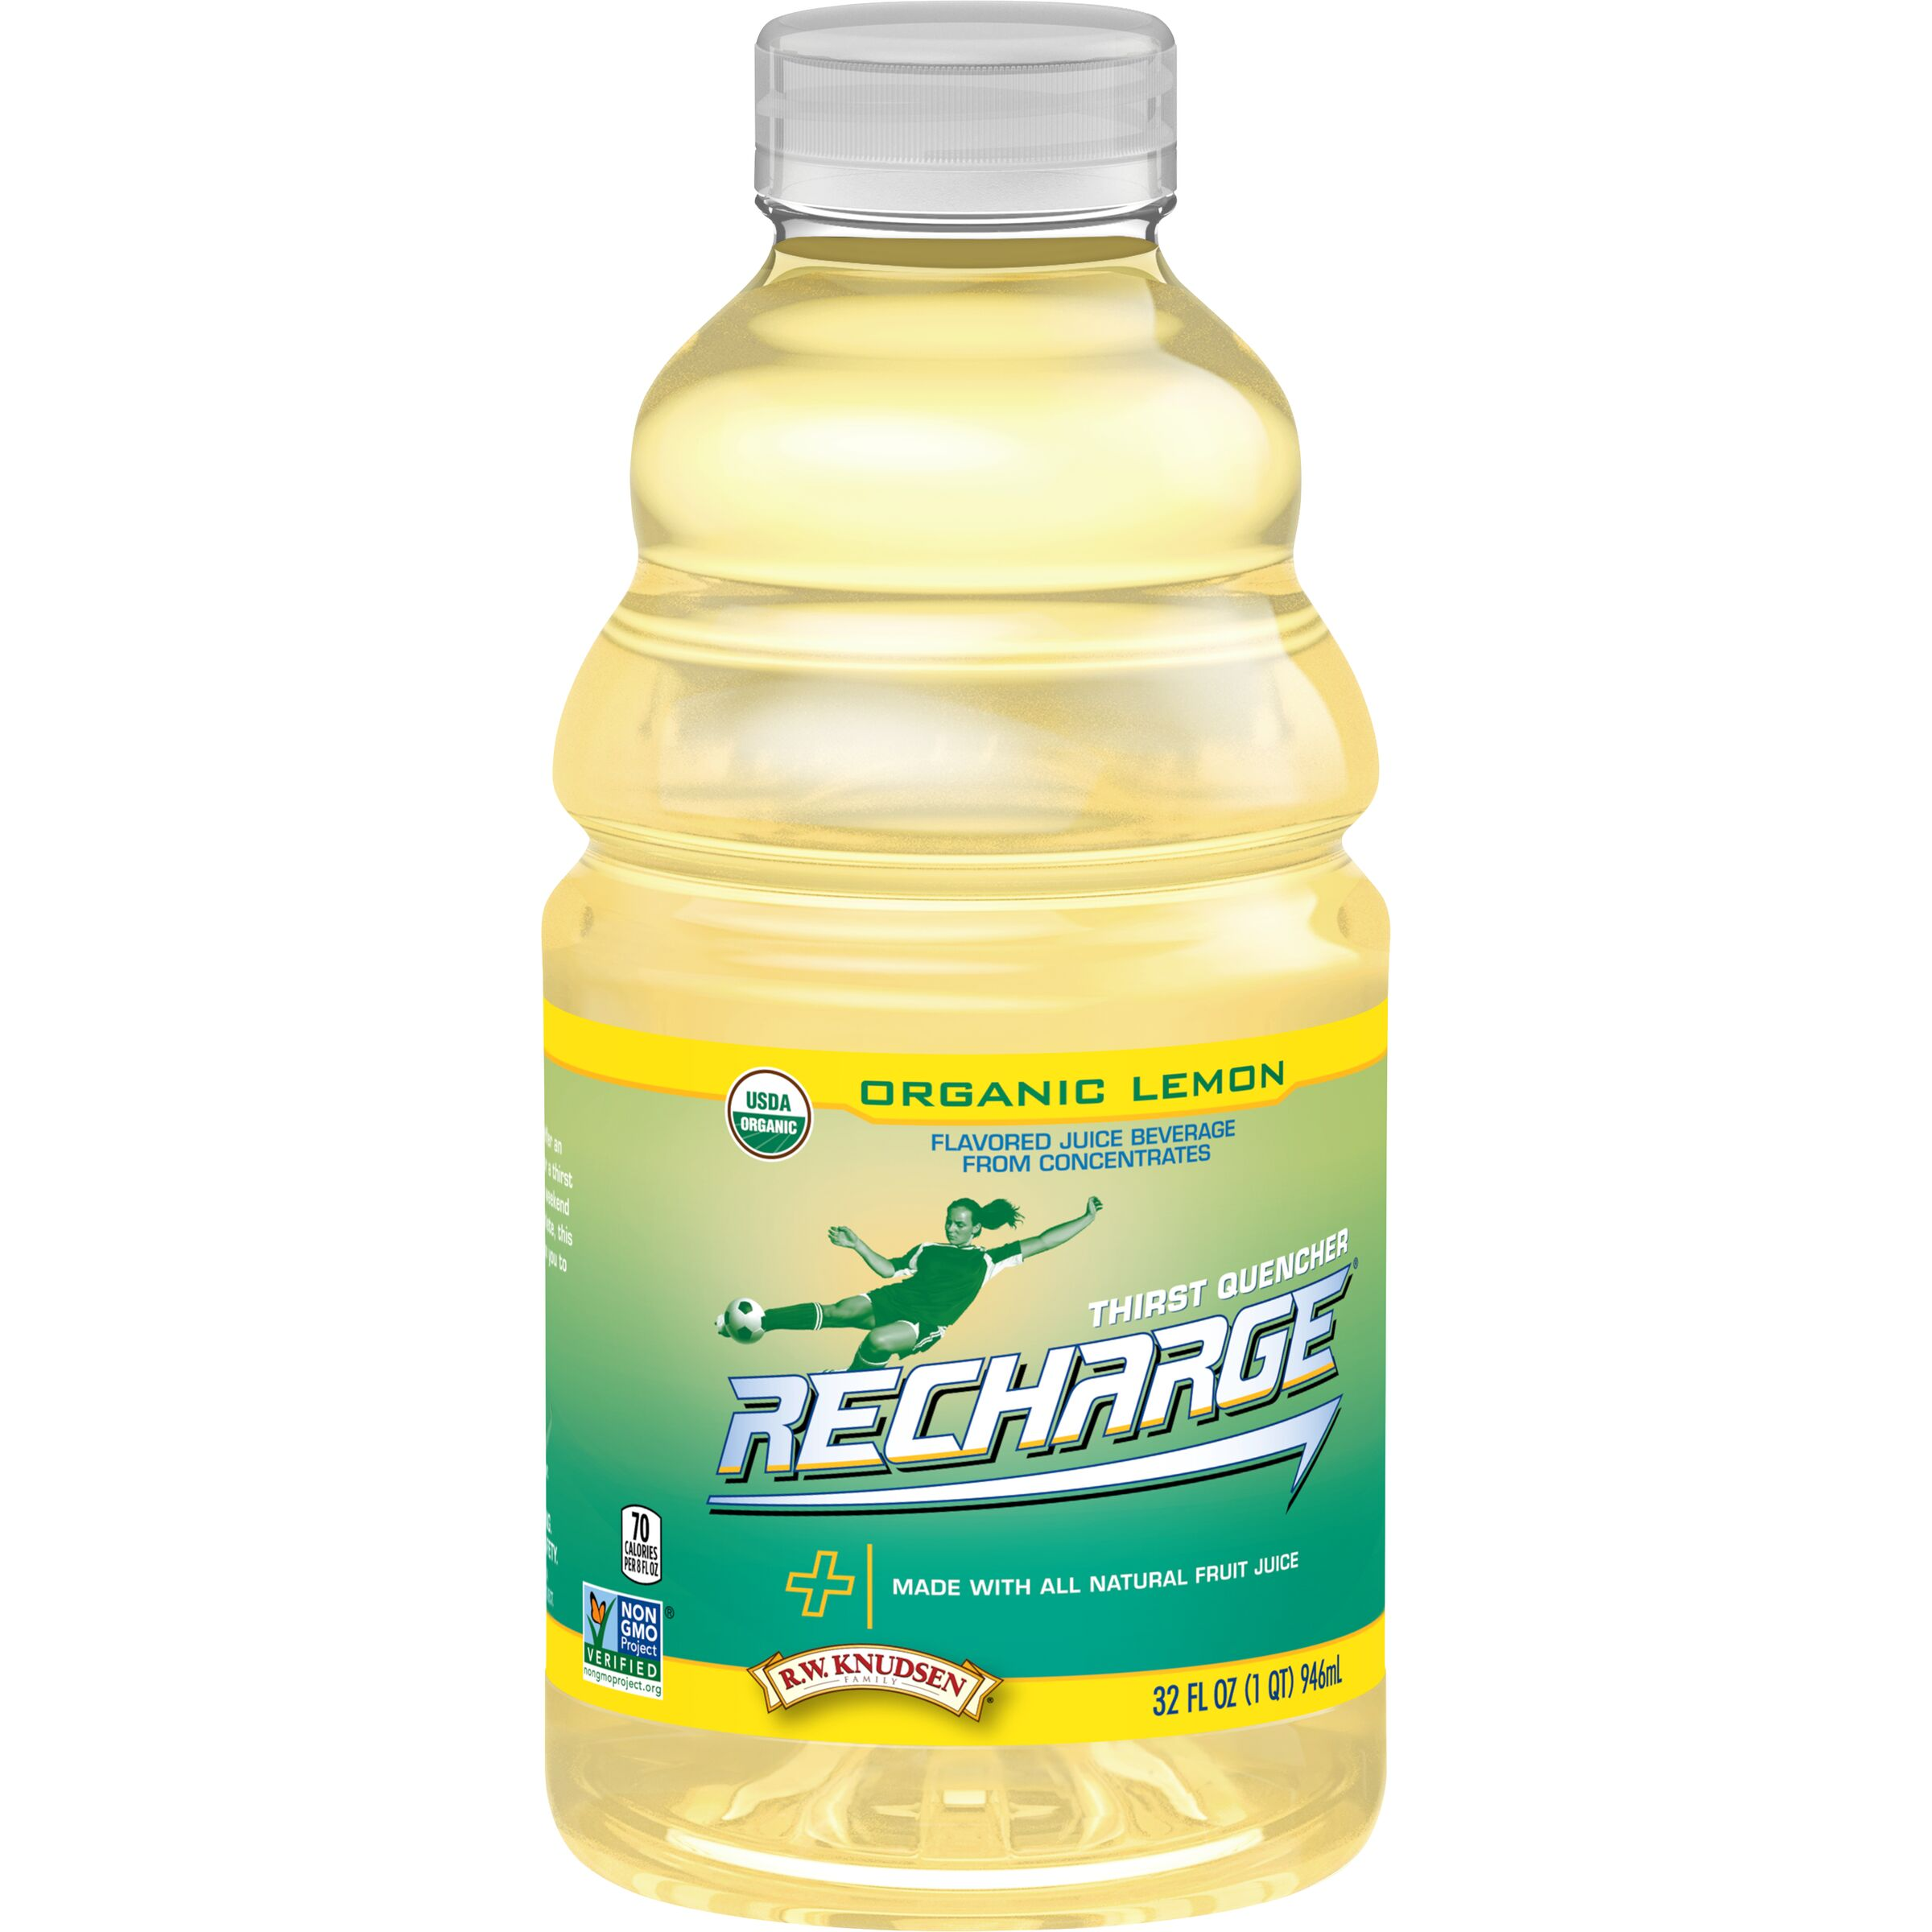 R.W. Knudsen Family Recharge Organic Lemon Sports Drink